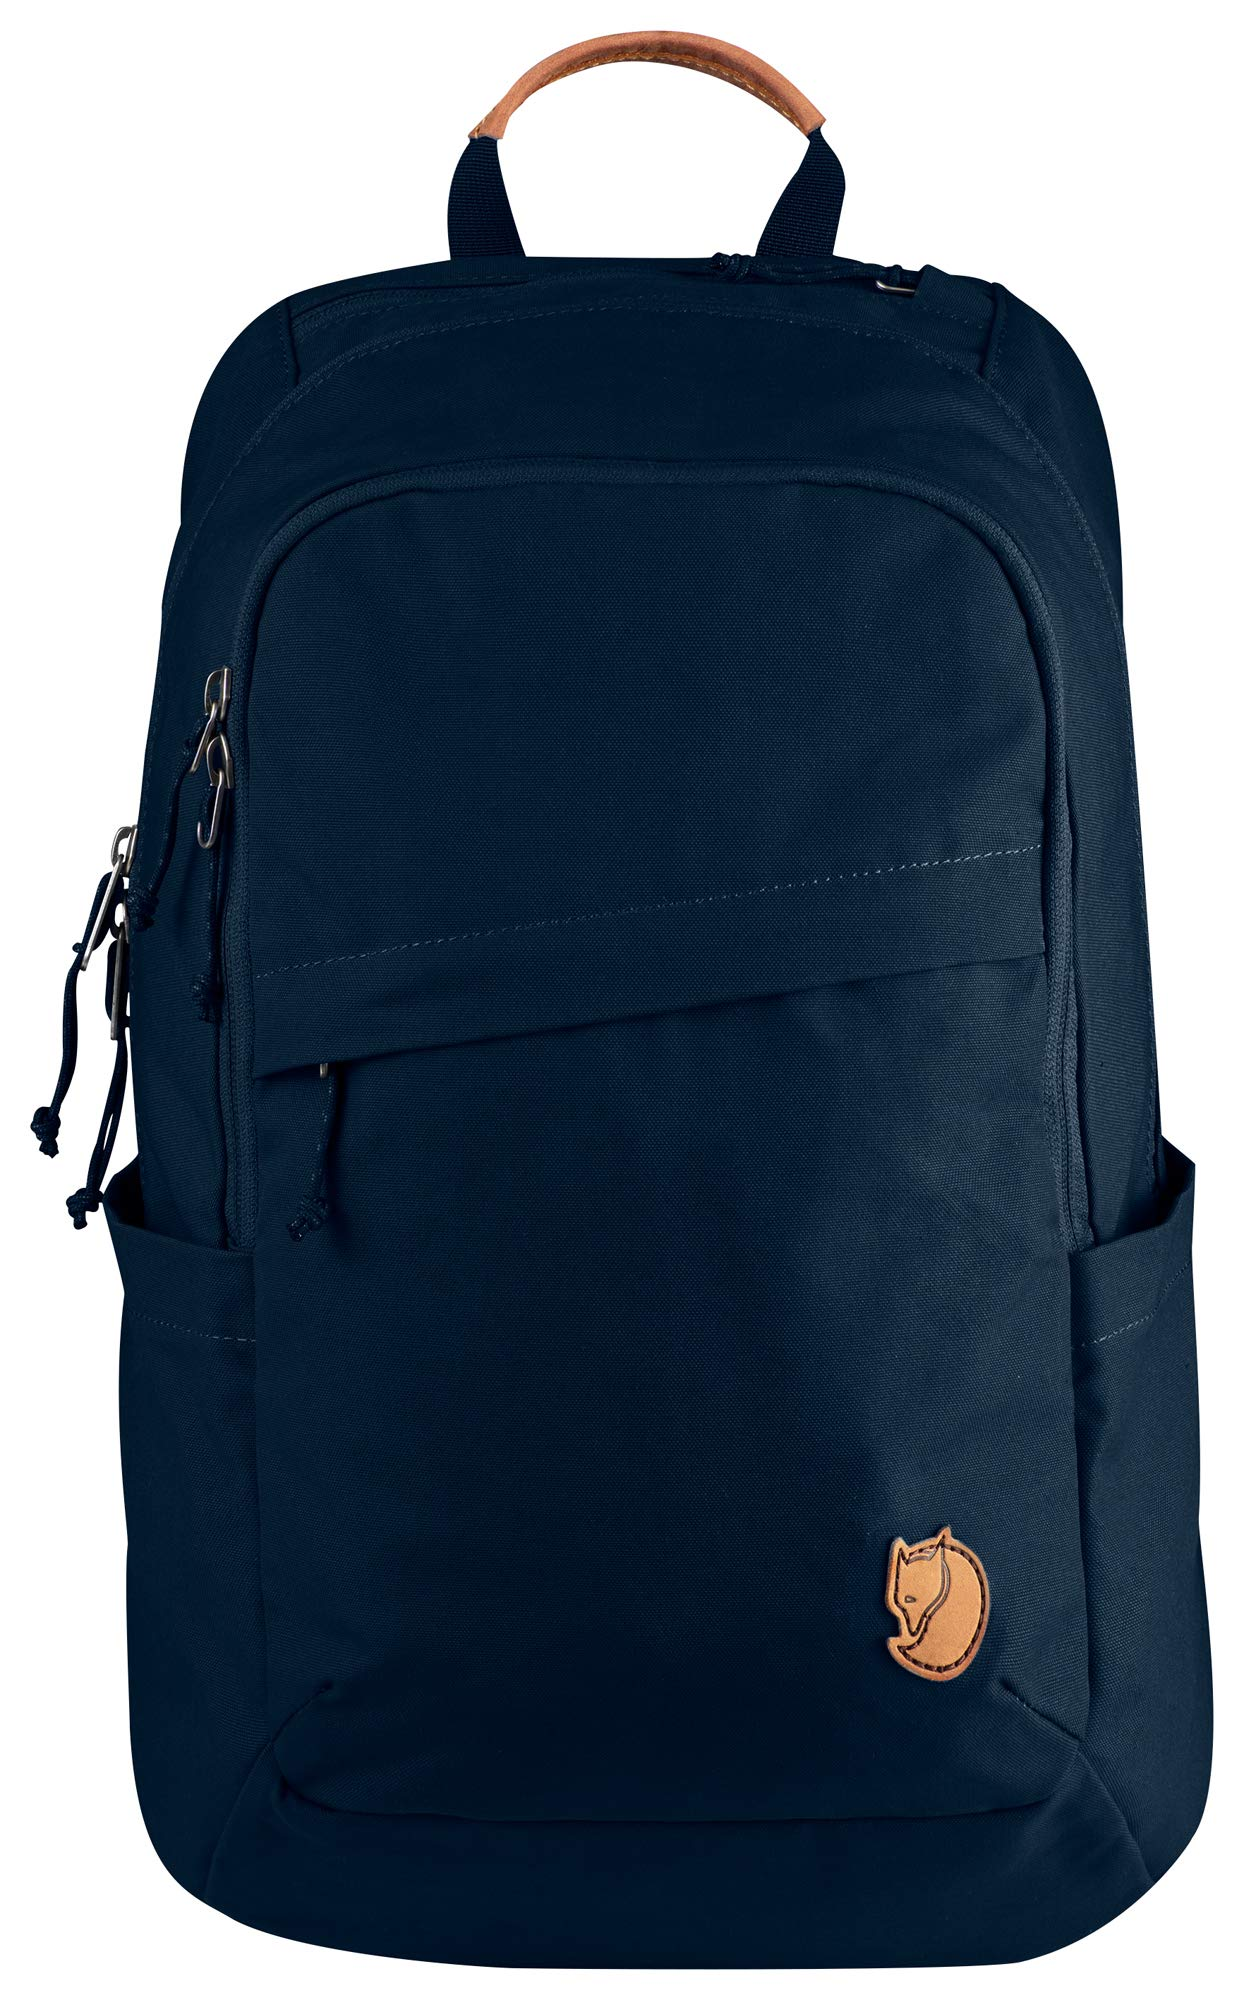 Fjallraven - Raven 20 Backpack, Fits 15'' Laptops, Navy by Fjallraven